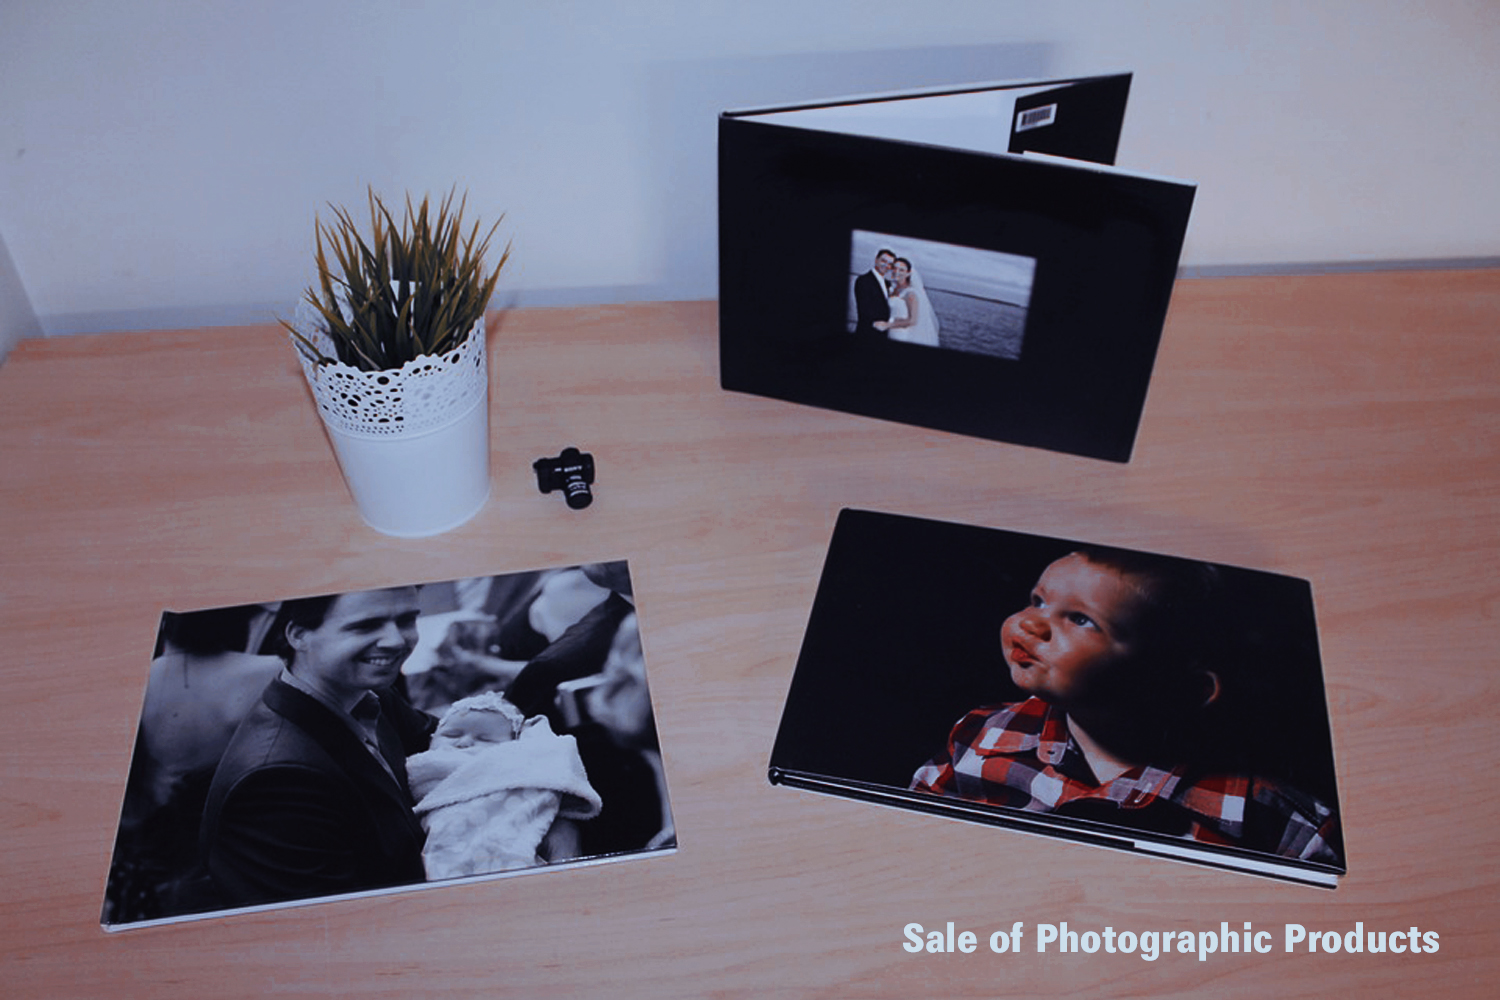 sale of photographic products